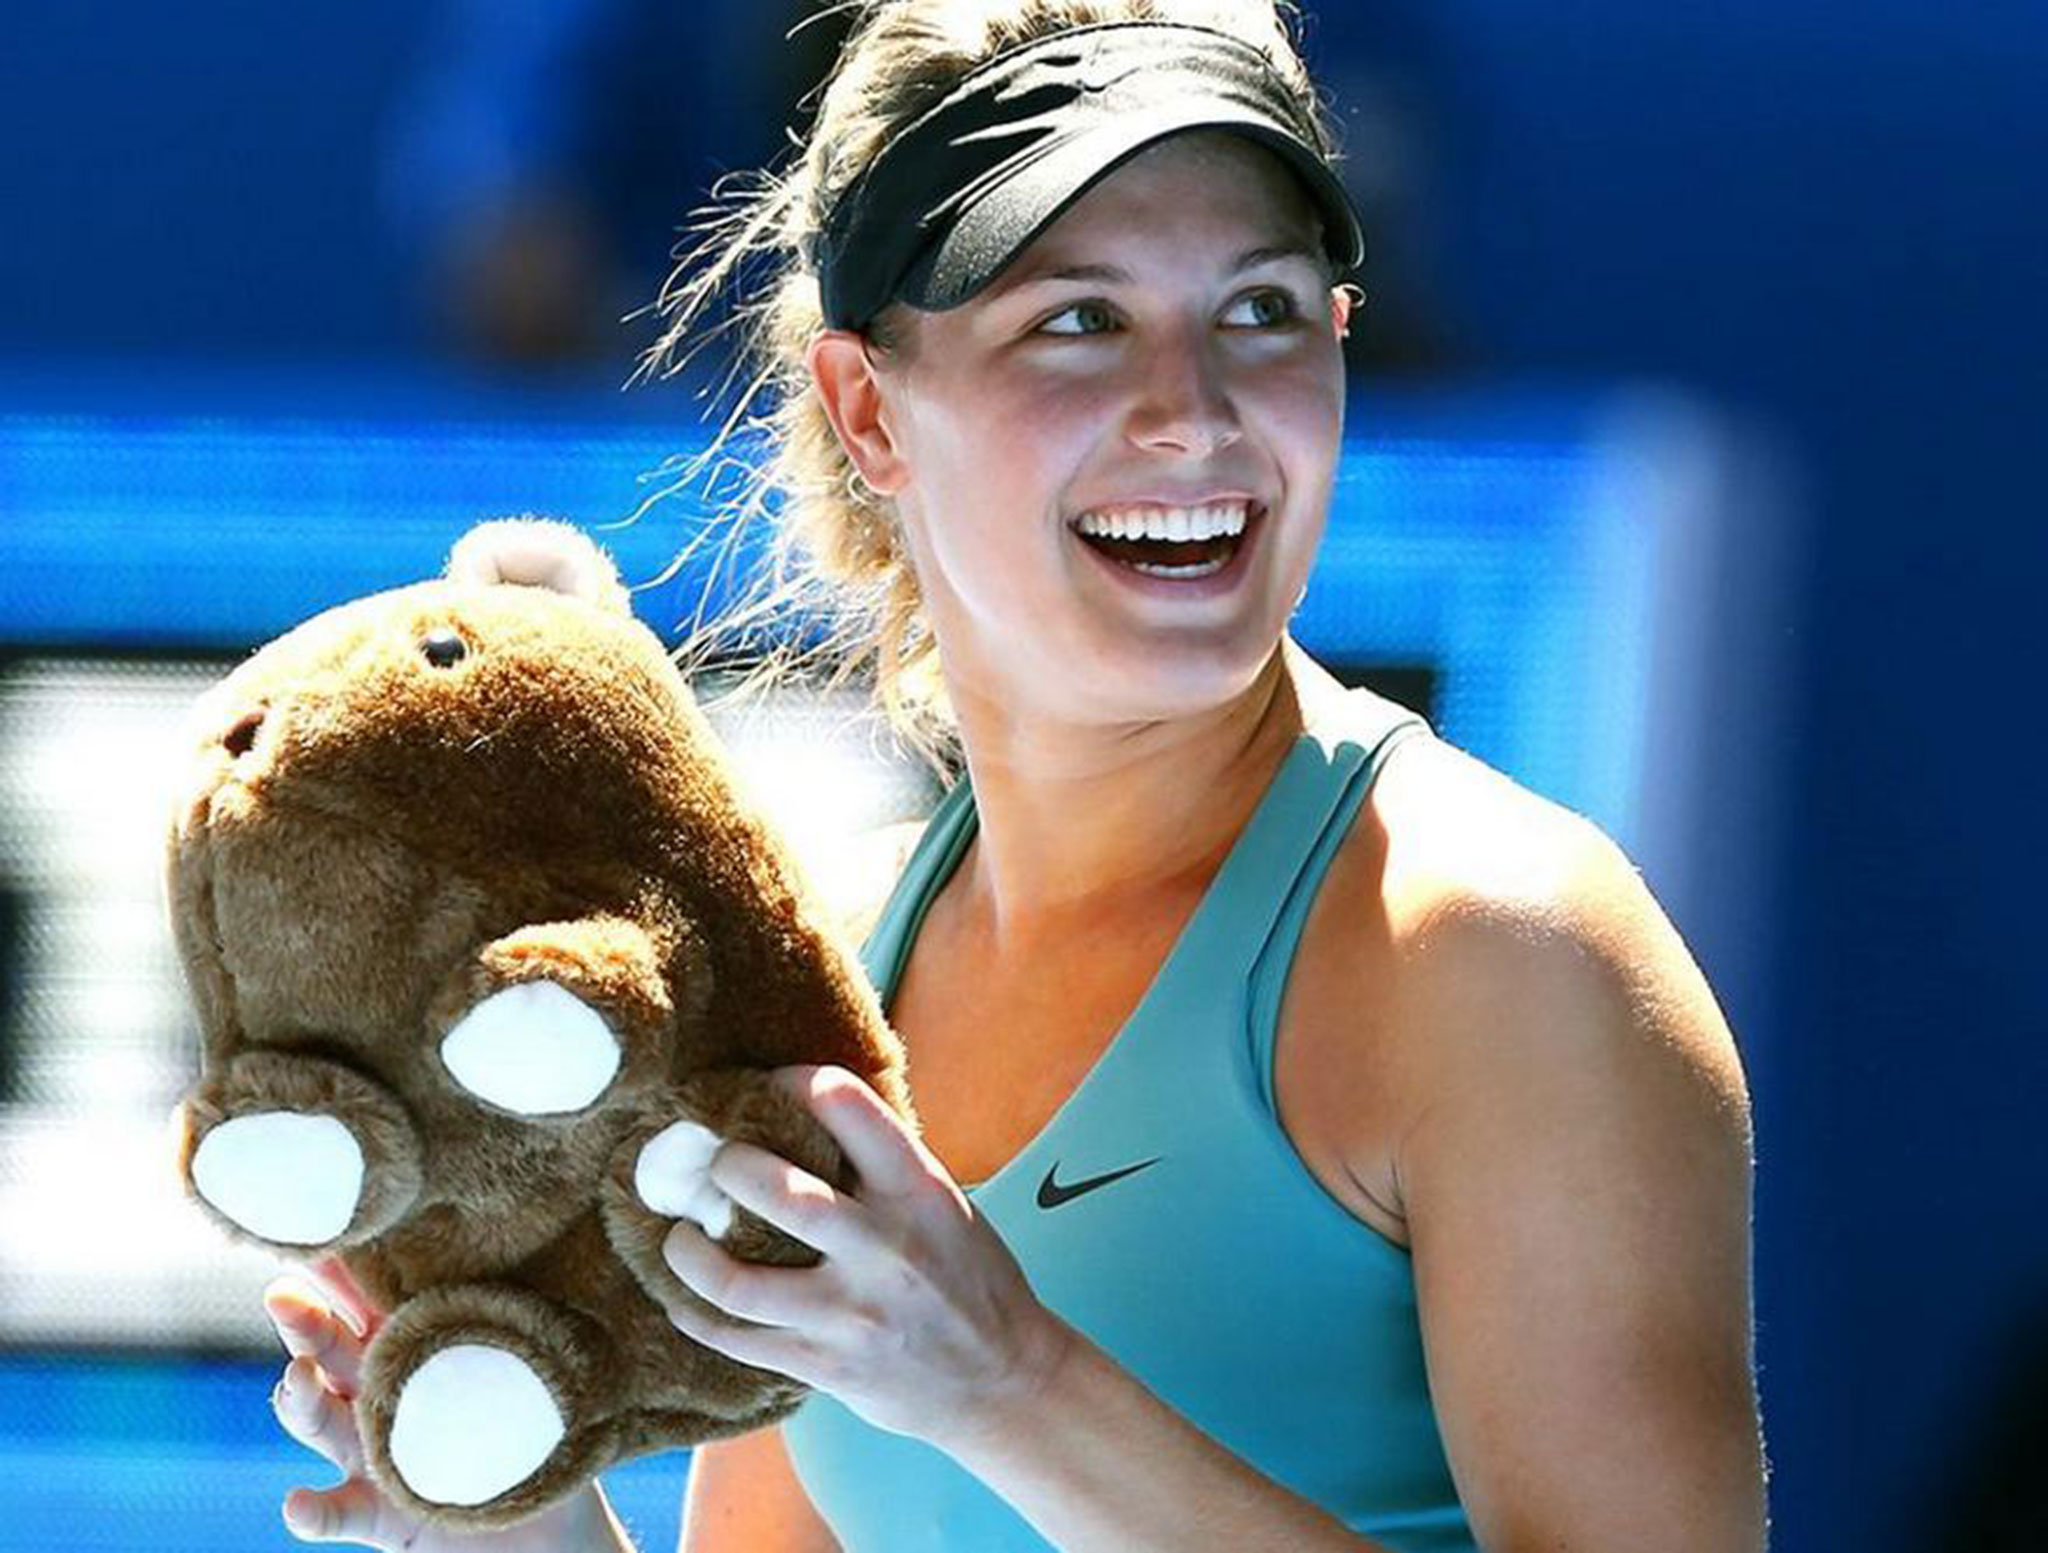 desktop eugenie bouchard lovely laugh with teddy bear pose background images mobile hd free